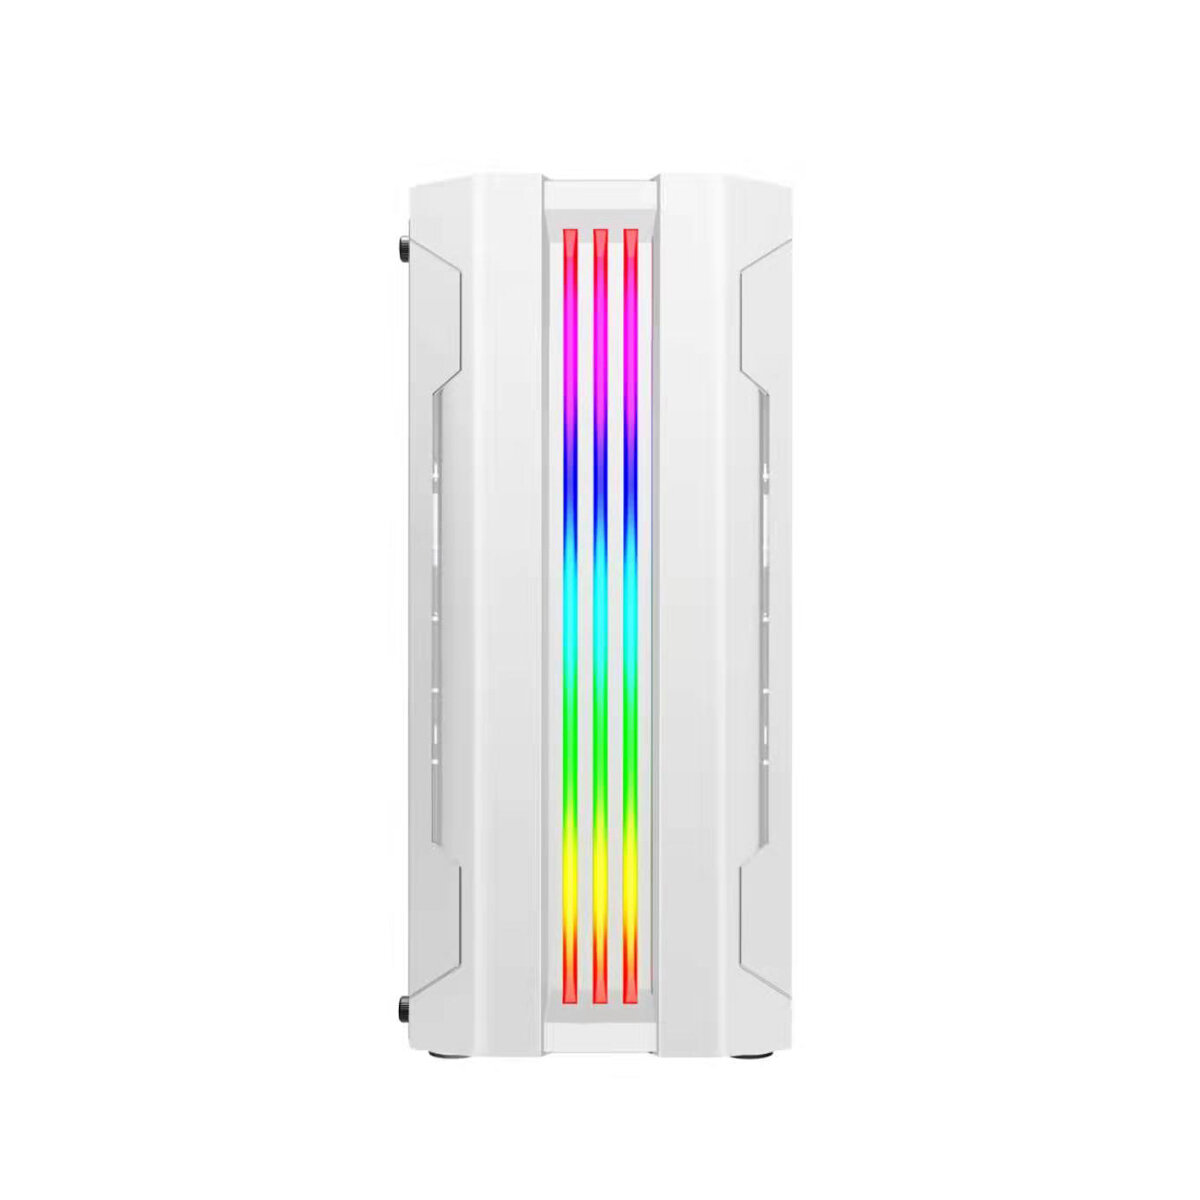 Gaming Case ATX Computer PC Cases with 280mm LED Rainbow Fan Desktop Computer Case Chassis RGB Light PC Case Tempered Glass